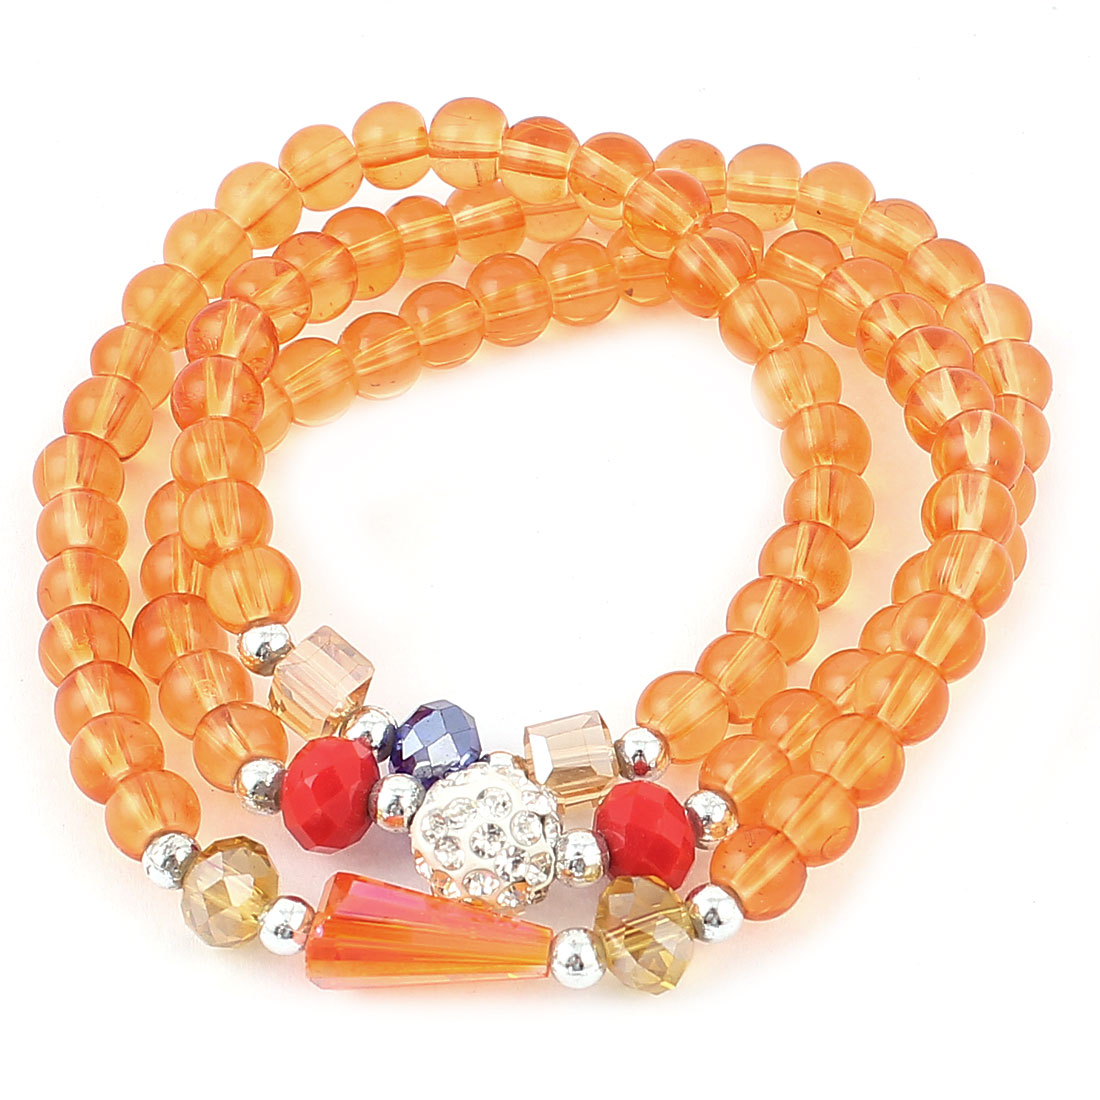 Orange Plastic Beads Stretchy Necklace Ring Bracelet for Girls